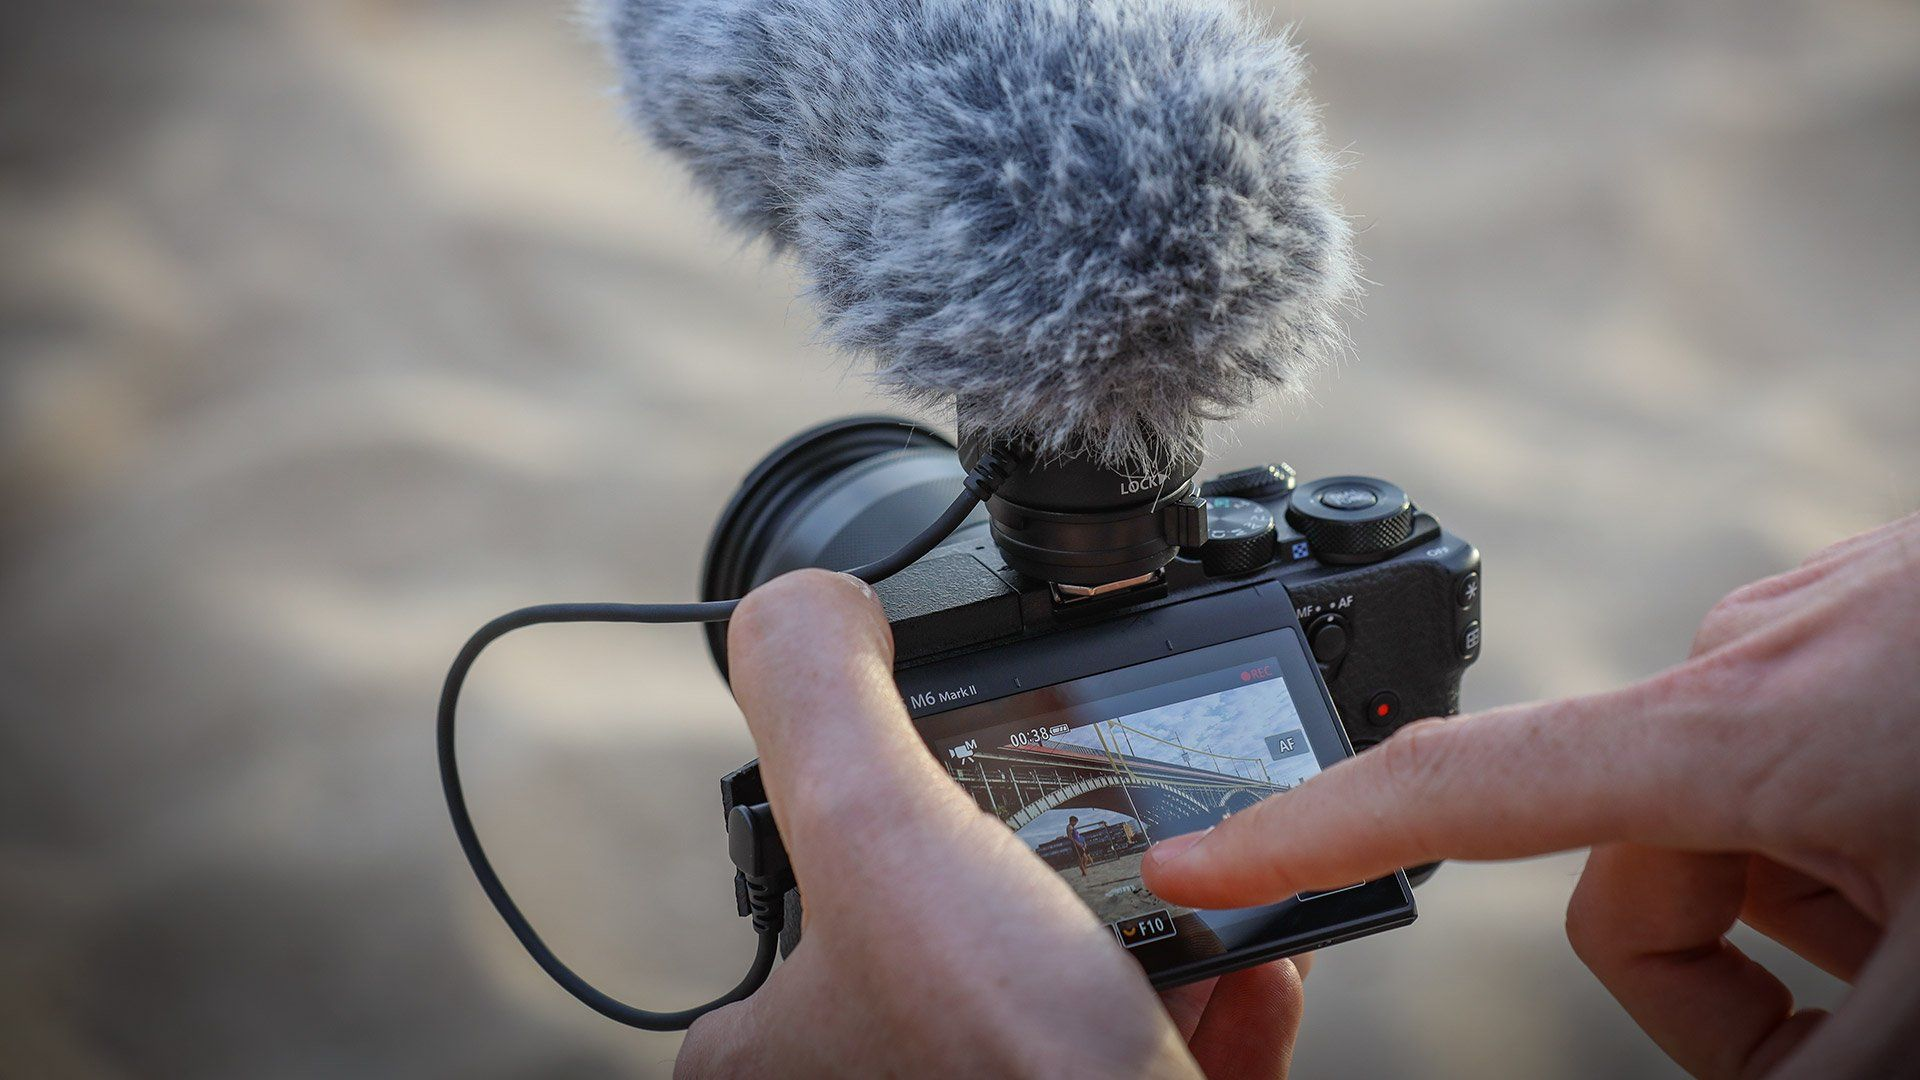 Capture compelling video